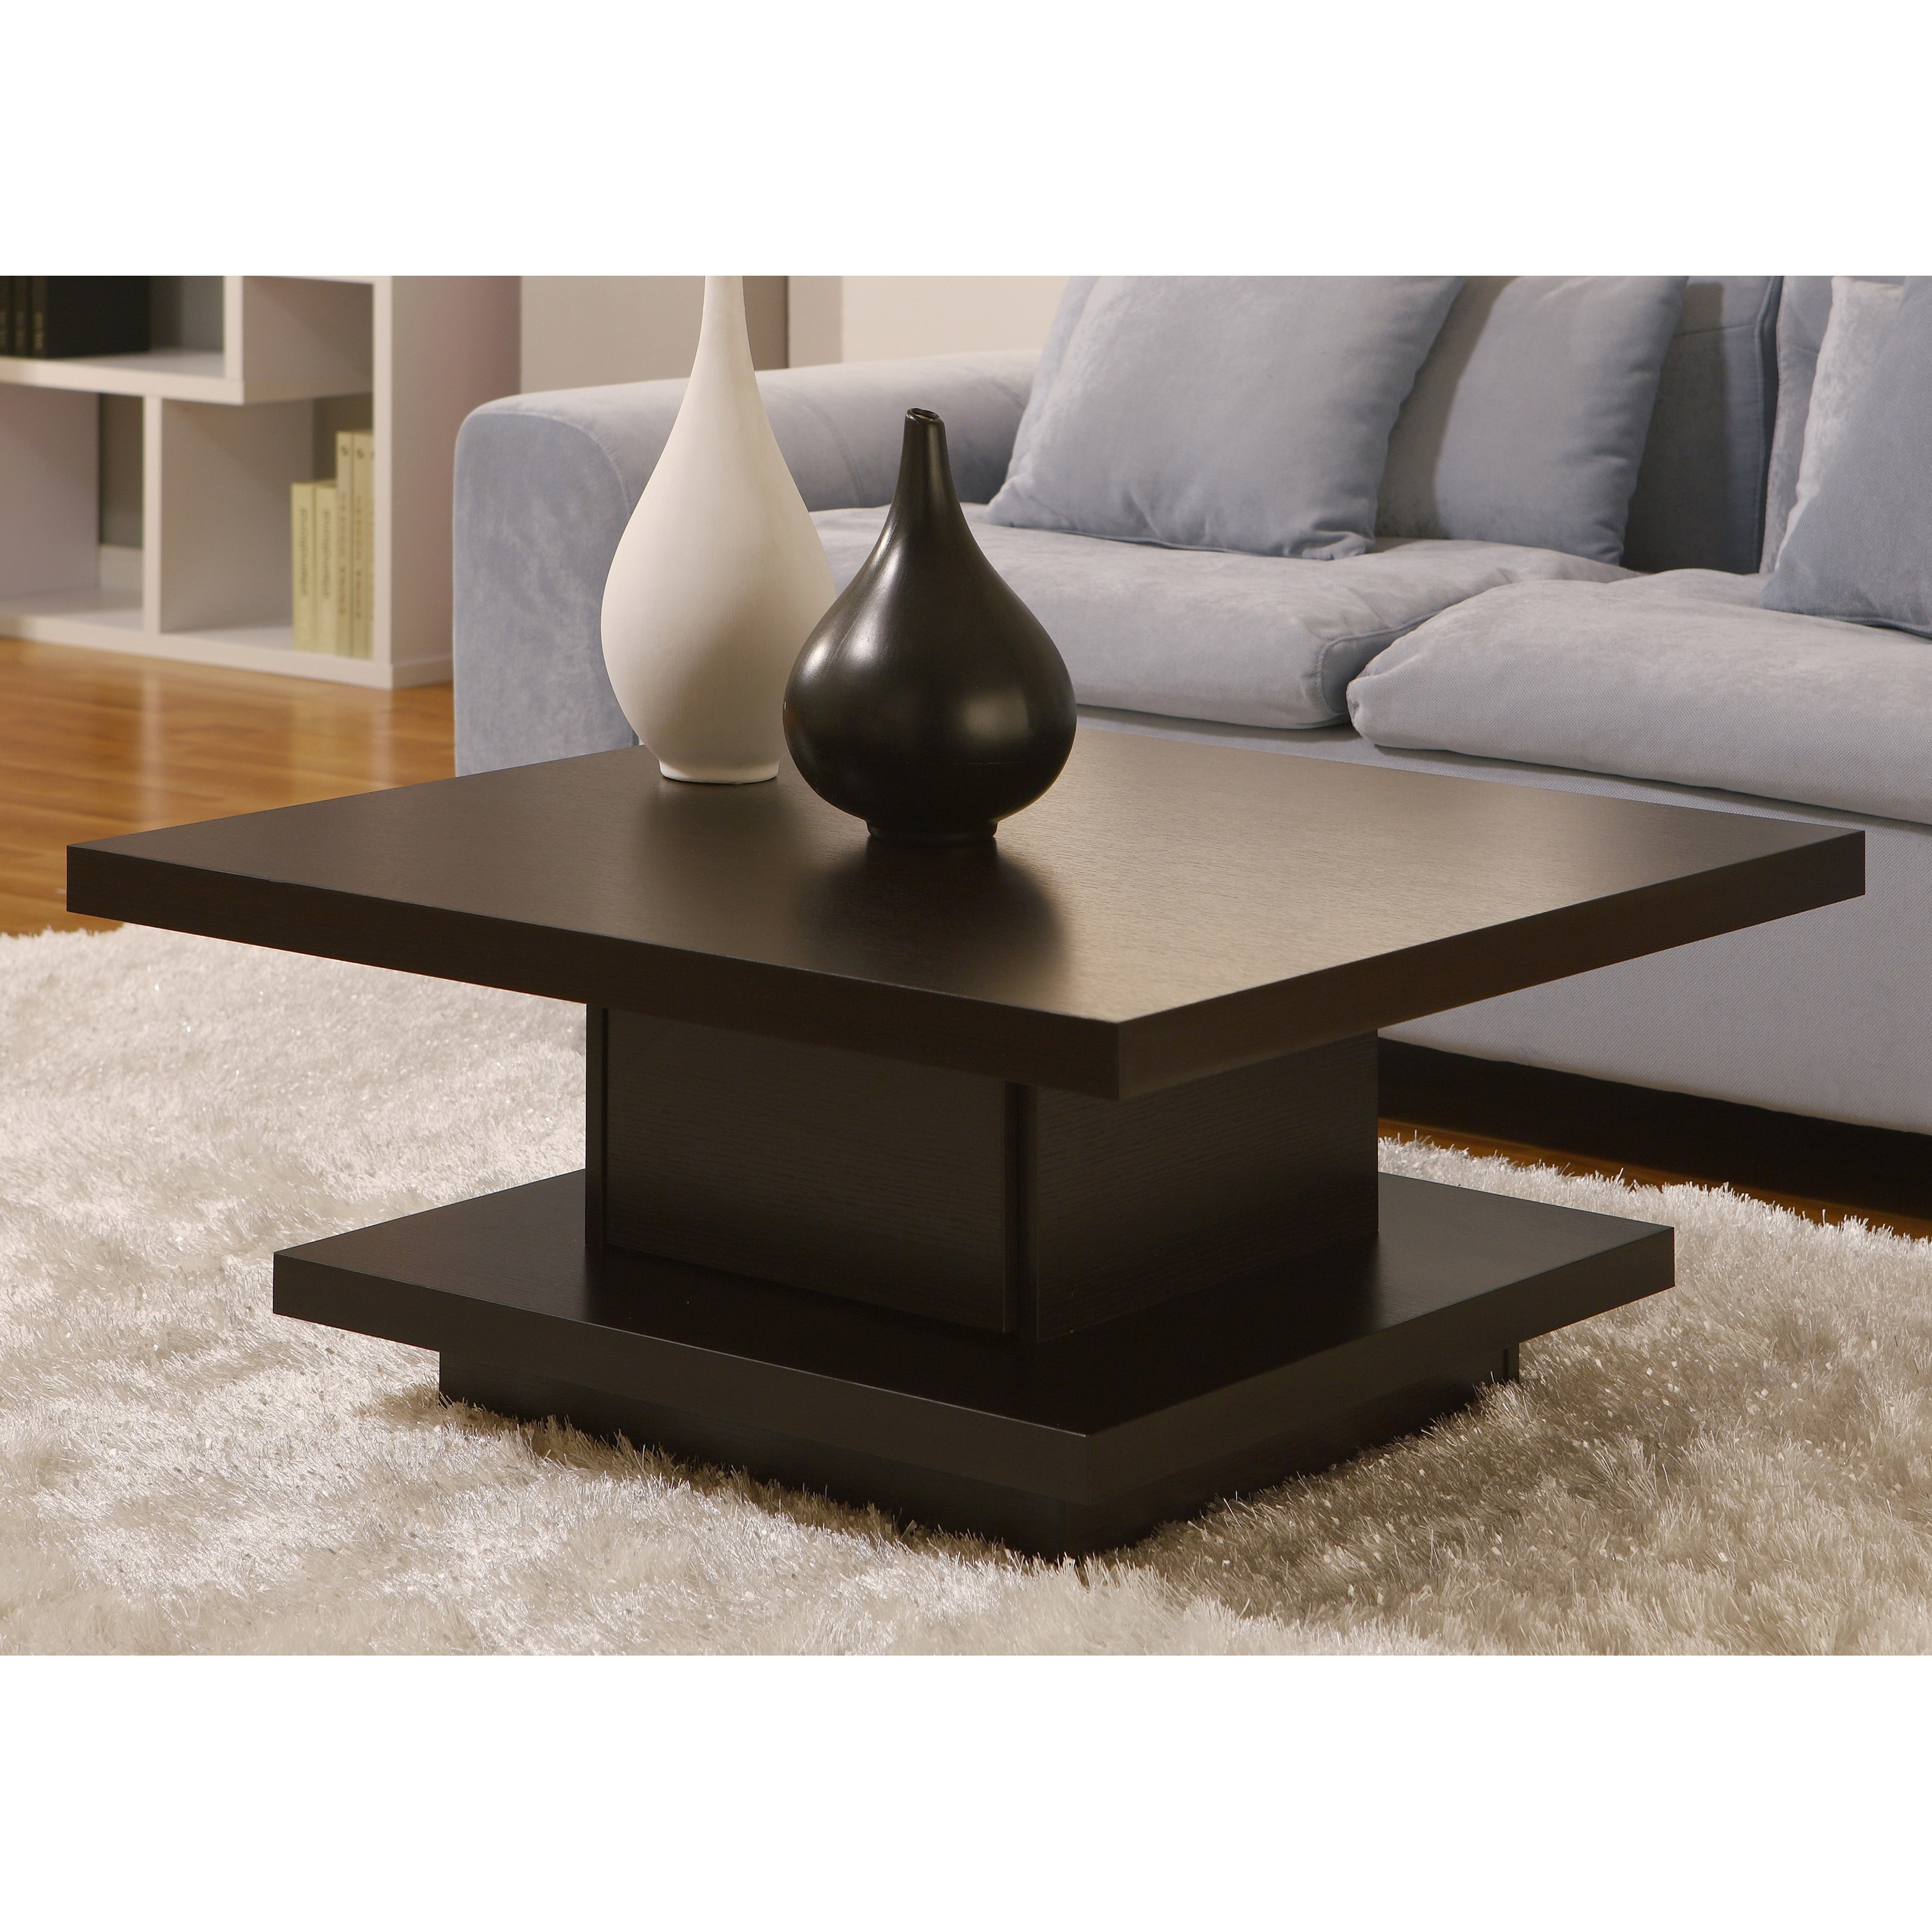 Unique Pagoda Coffee Table Veneer Wood Finish Coffee Bean Counter Top